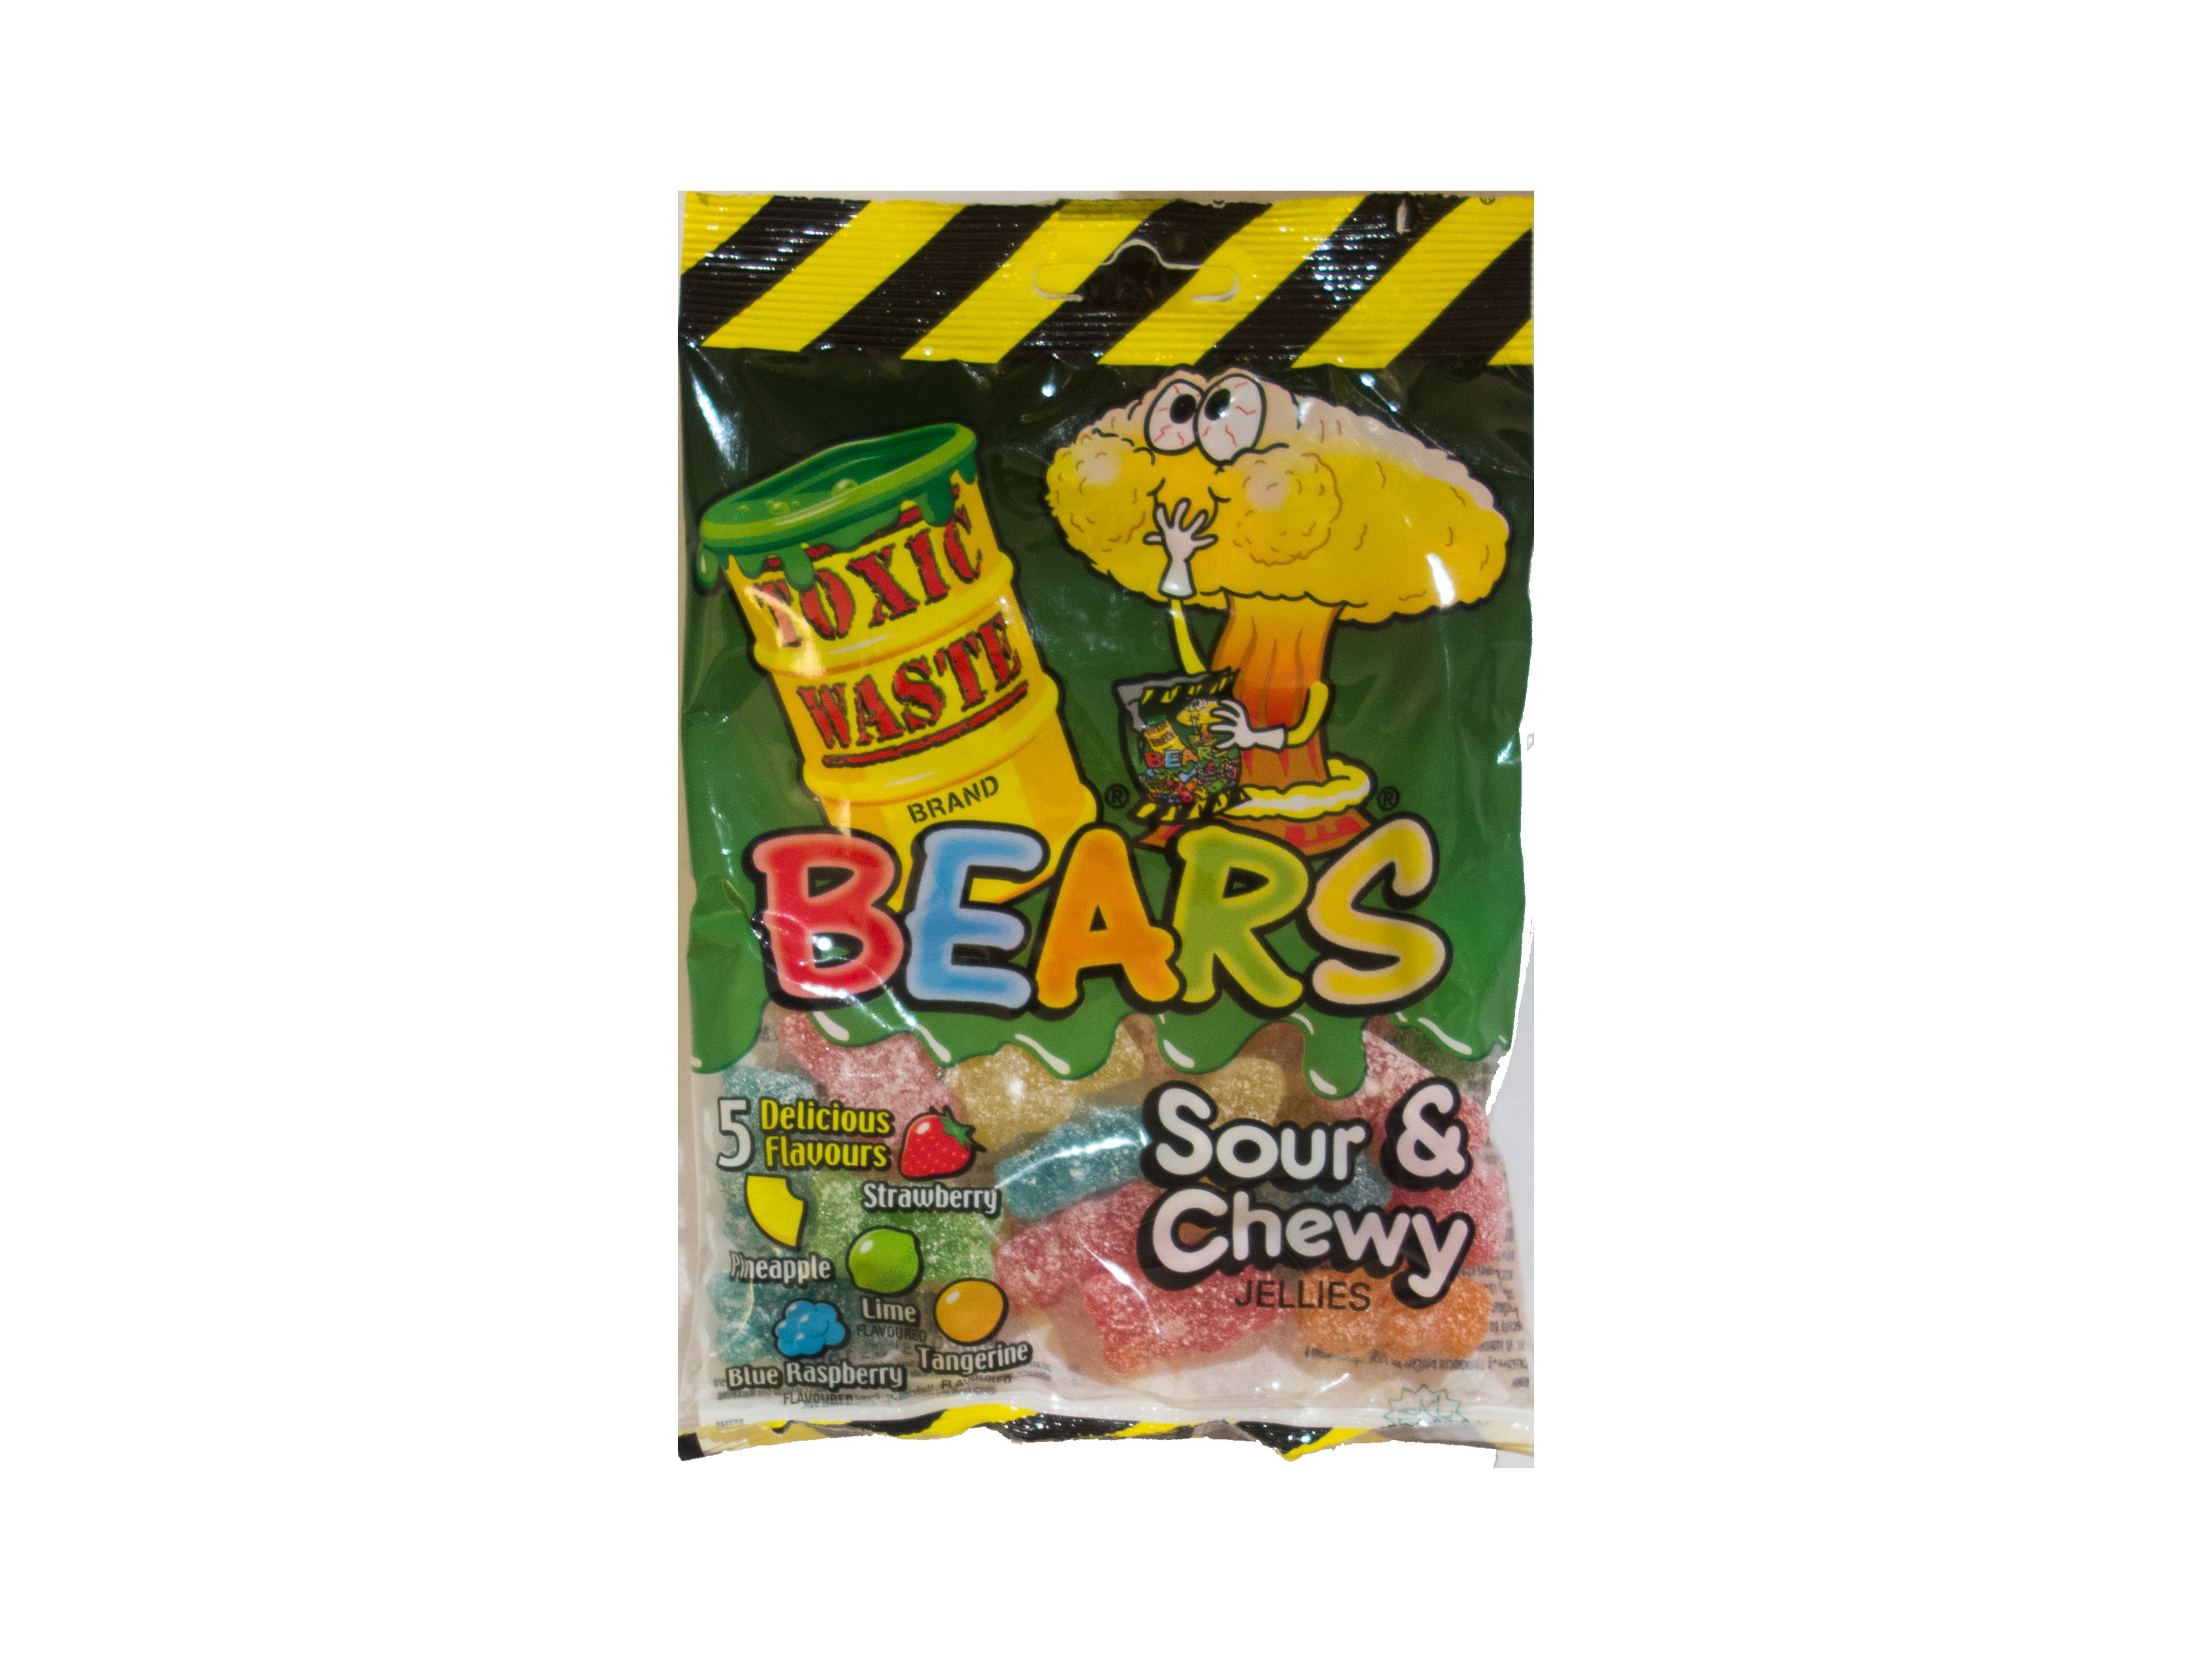 Toxic Waste Bears Sour & Chewy Jellies (142g)